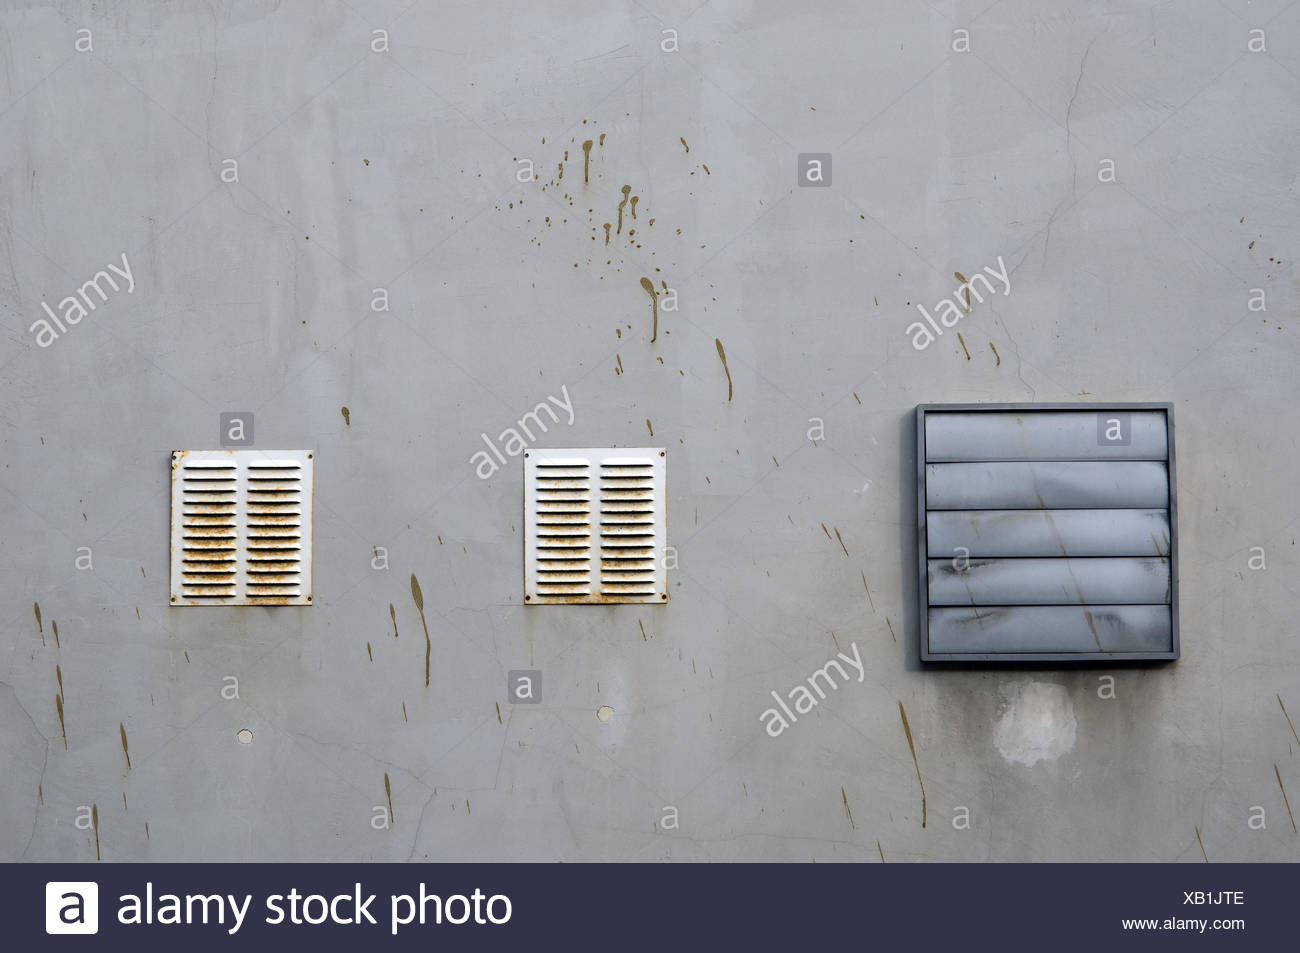 Wall of a house, ventilation, air shafts, rusty, dirtily, slots, trigger, trigger orifice, outside, mud, - Stock Image